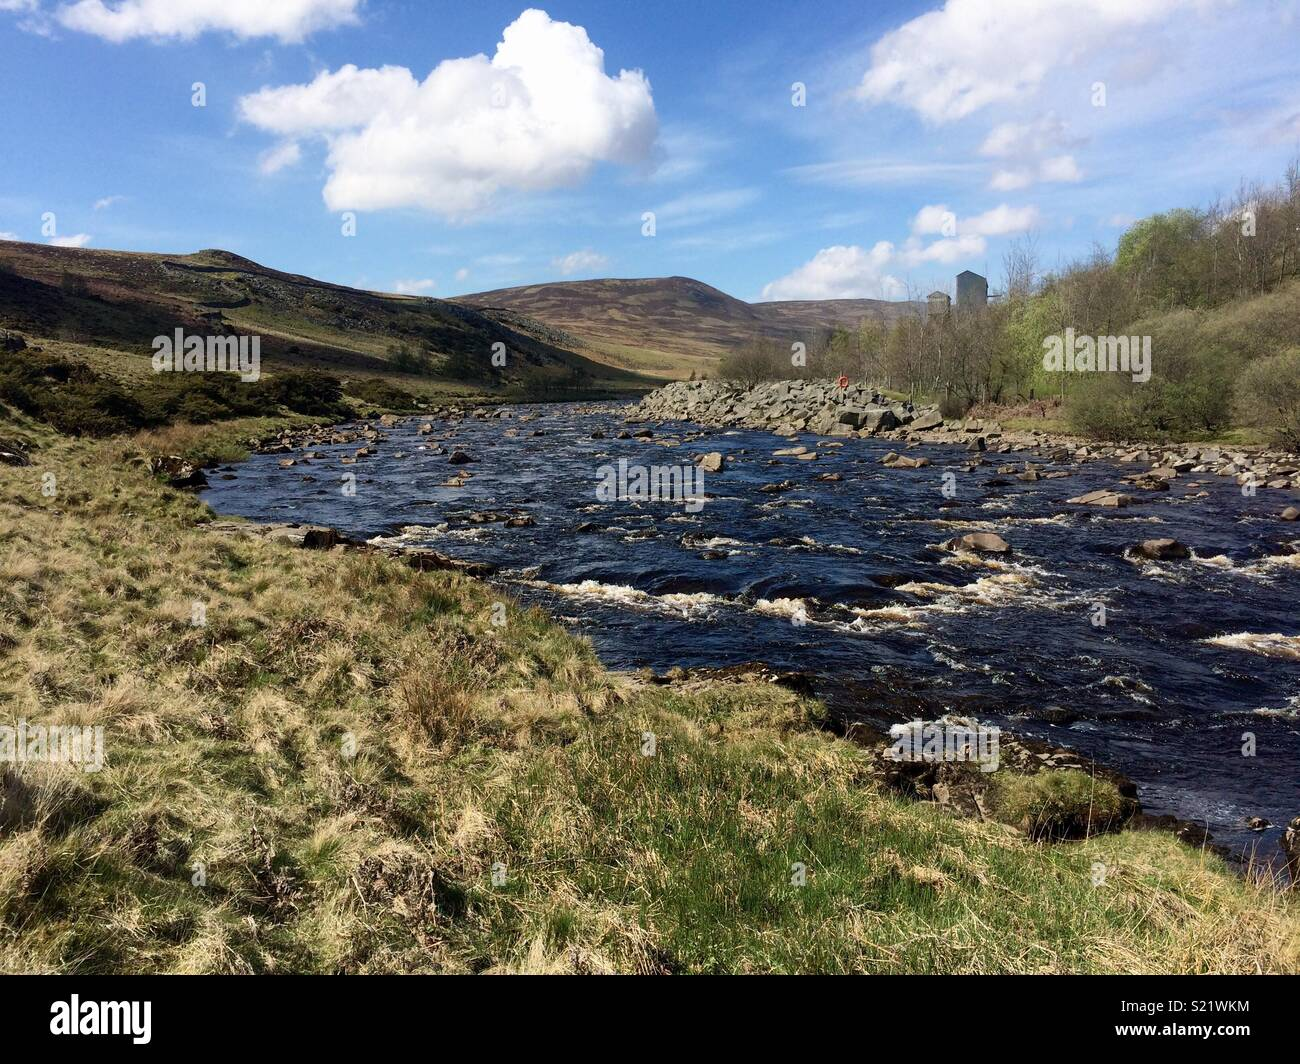 The River Tees, North Pennines - Stock Image